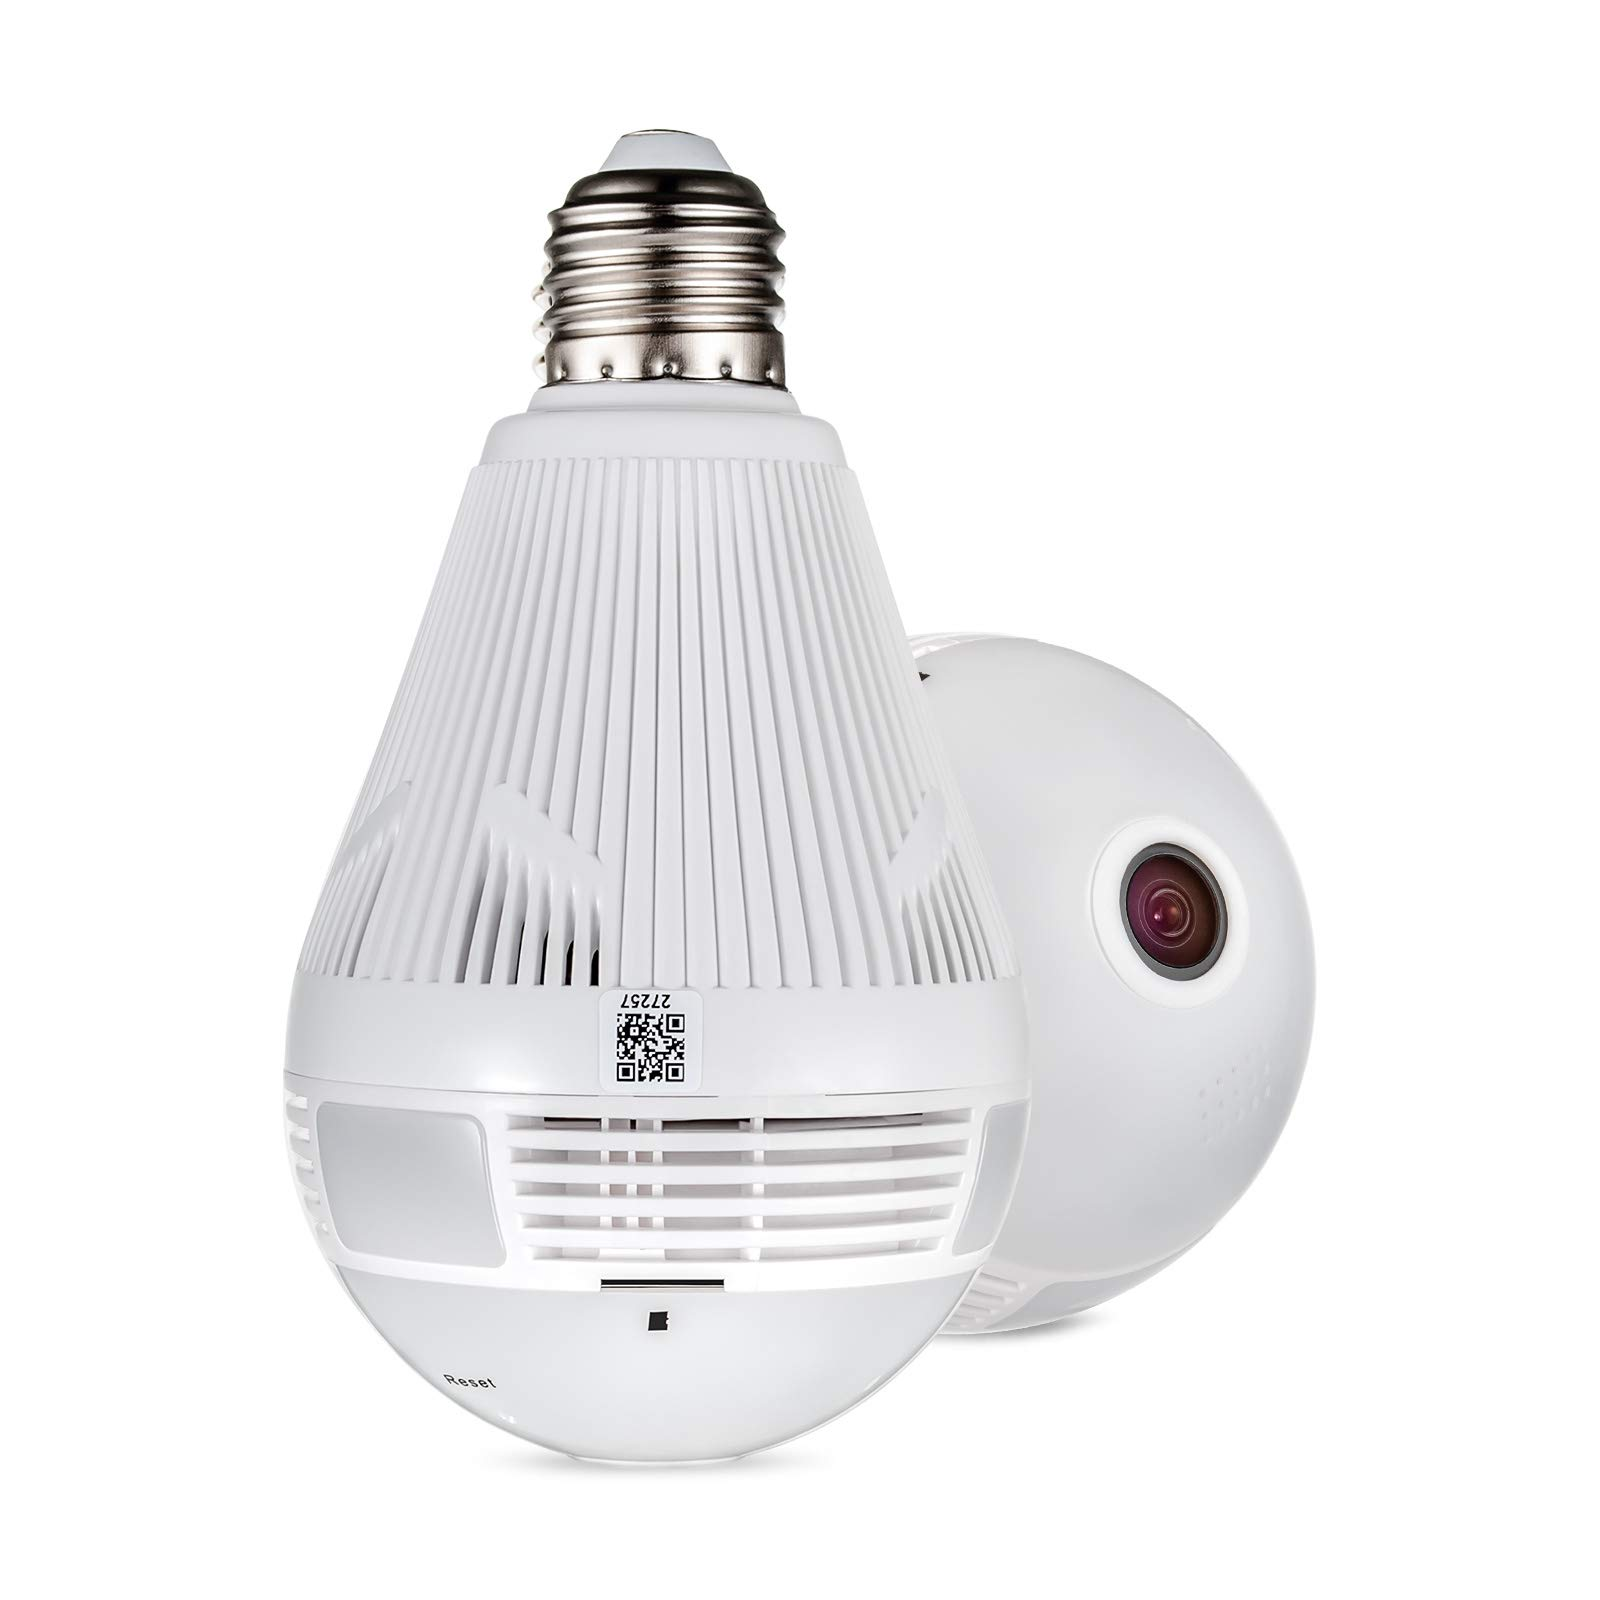 FUERS 360 Degree WiFi Panoramic Bulb Camera IP Security Surveillance Camera for Home Wireless Remote View Baby Pet Motion Detection Light Bulb VR Camera with Night Vision/Two-Way Audio,Support 2.4G